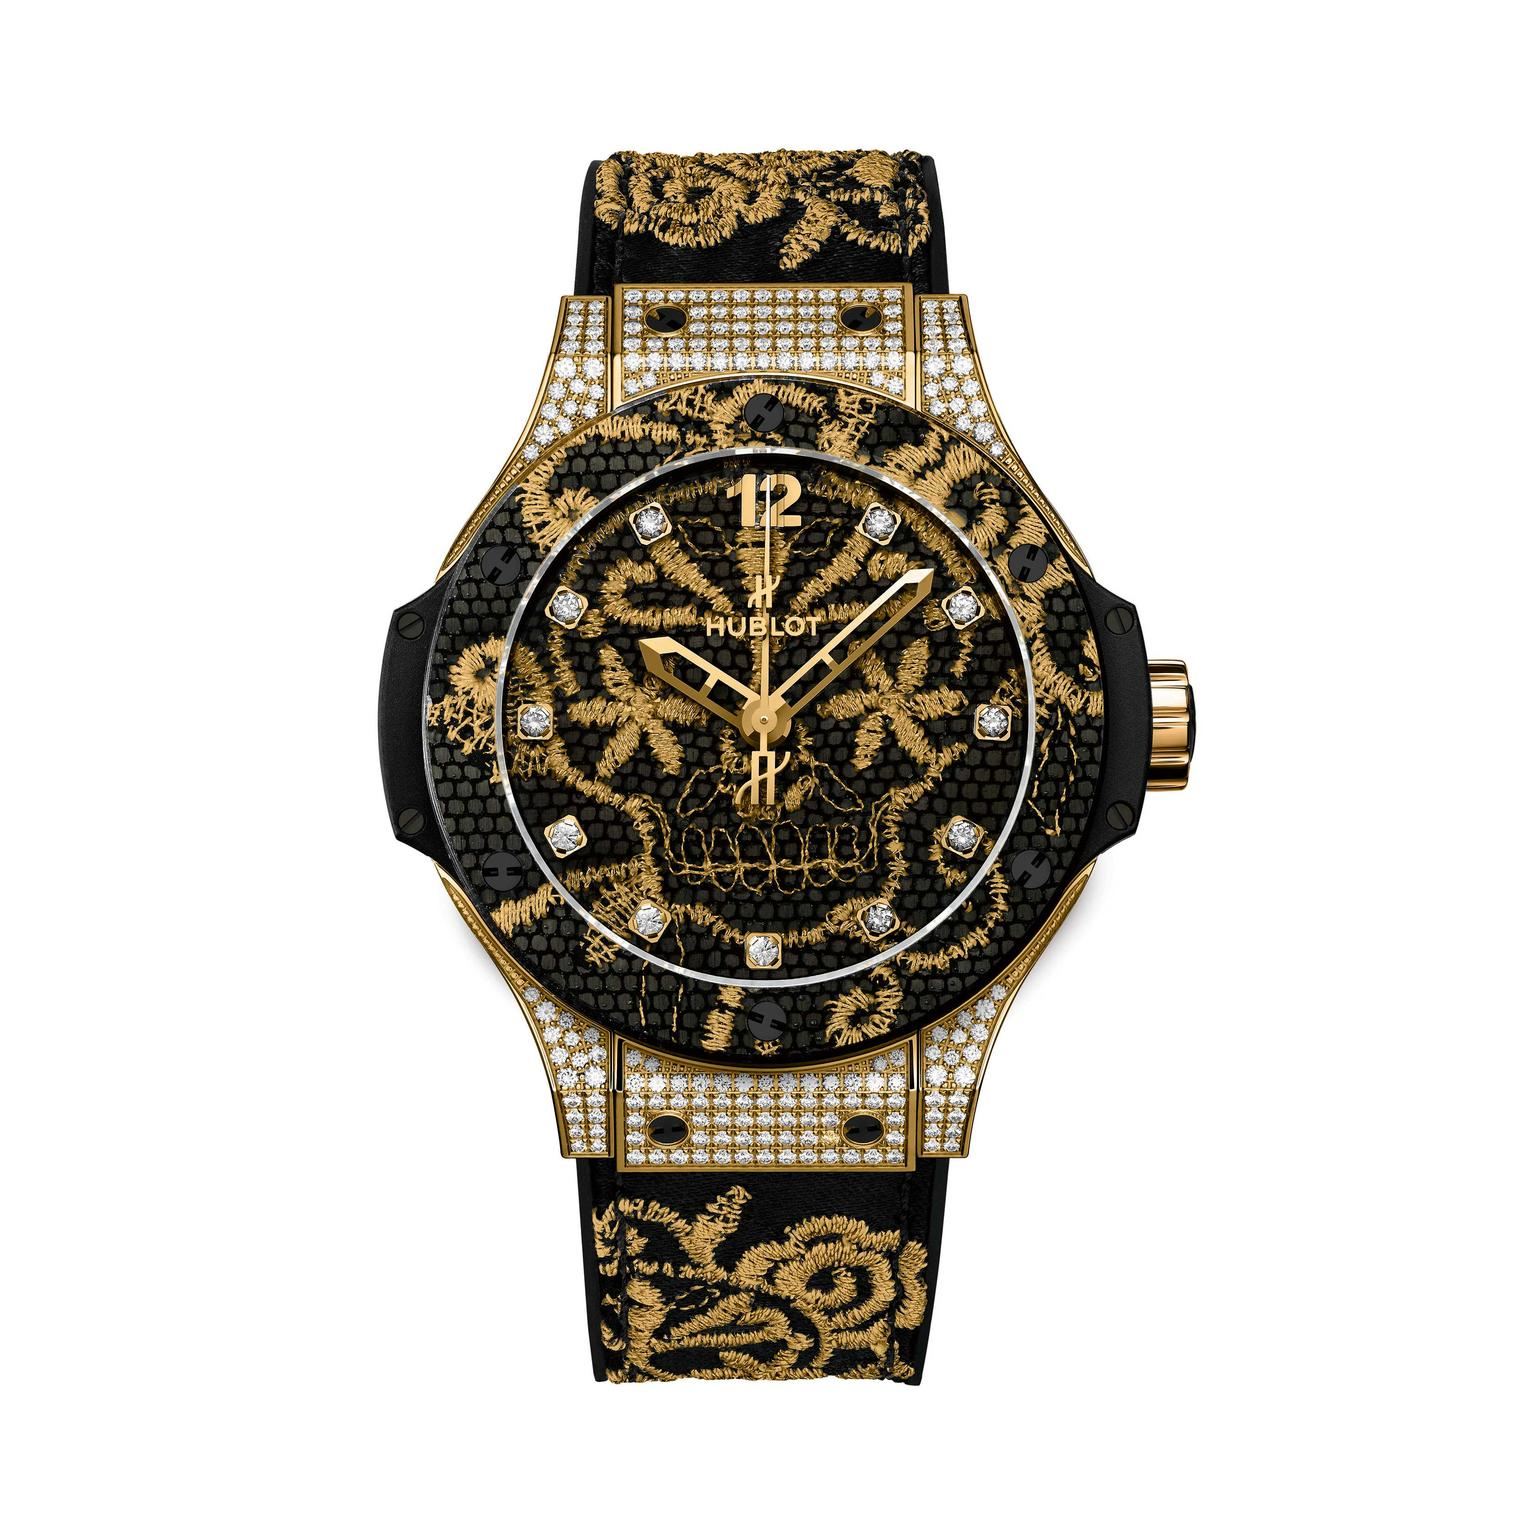 Hublot-black-and-gold-lace-watch